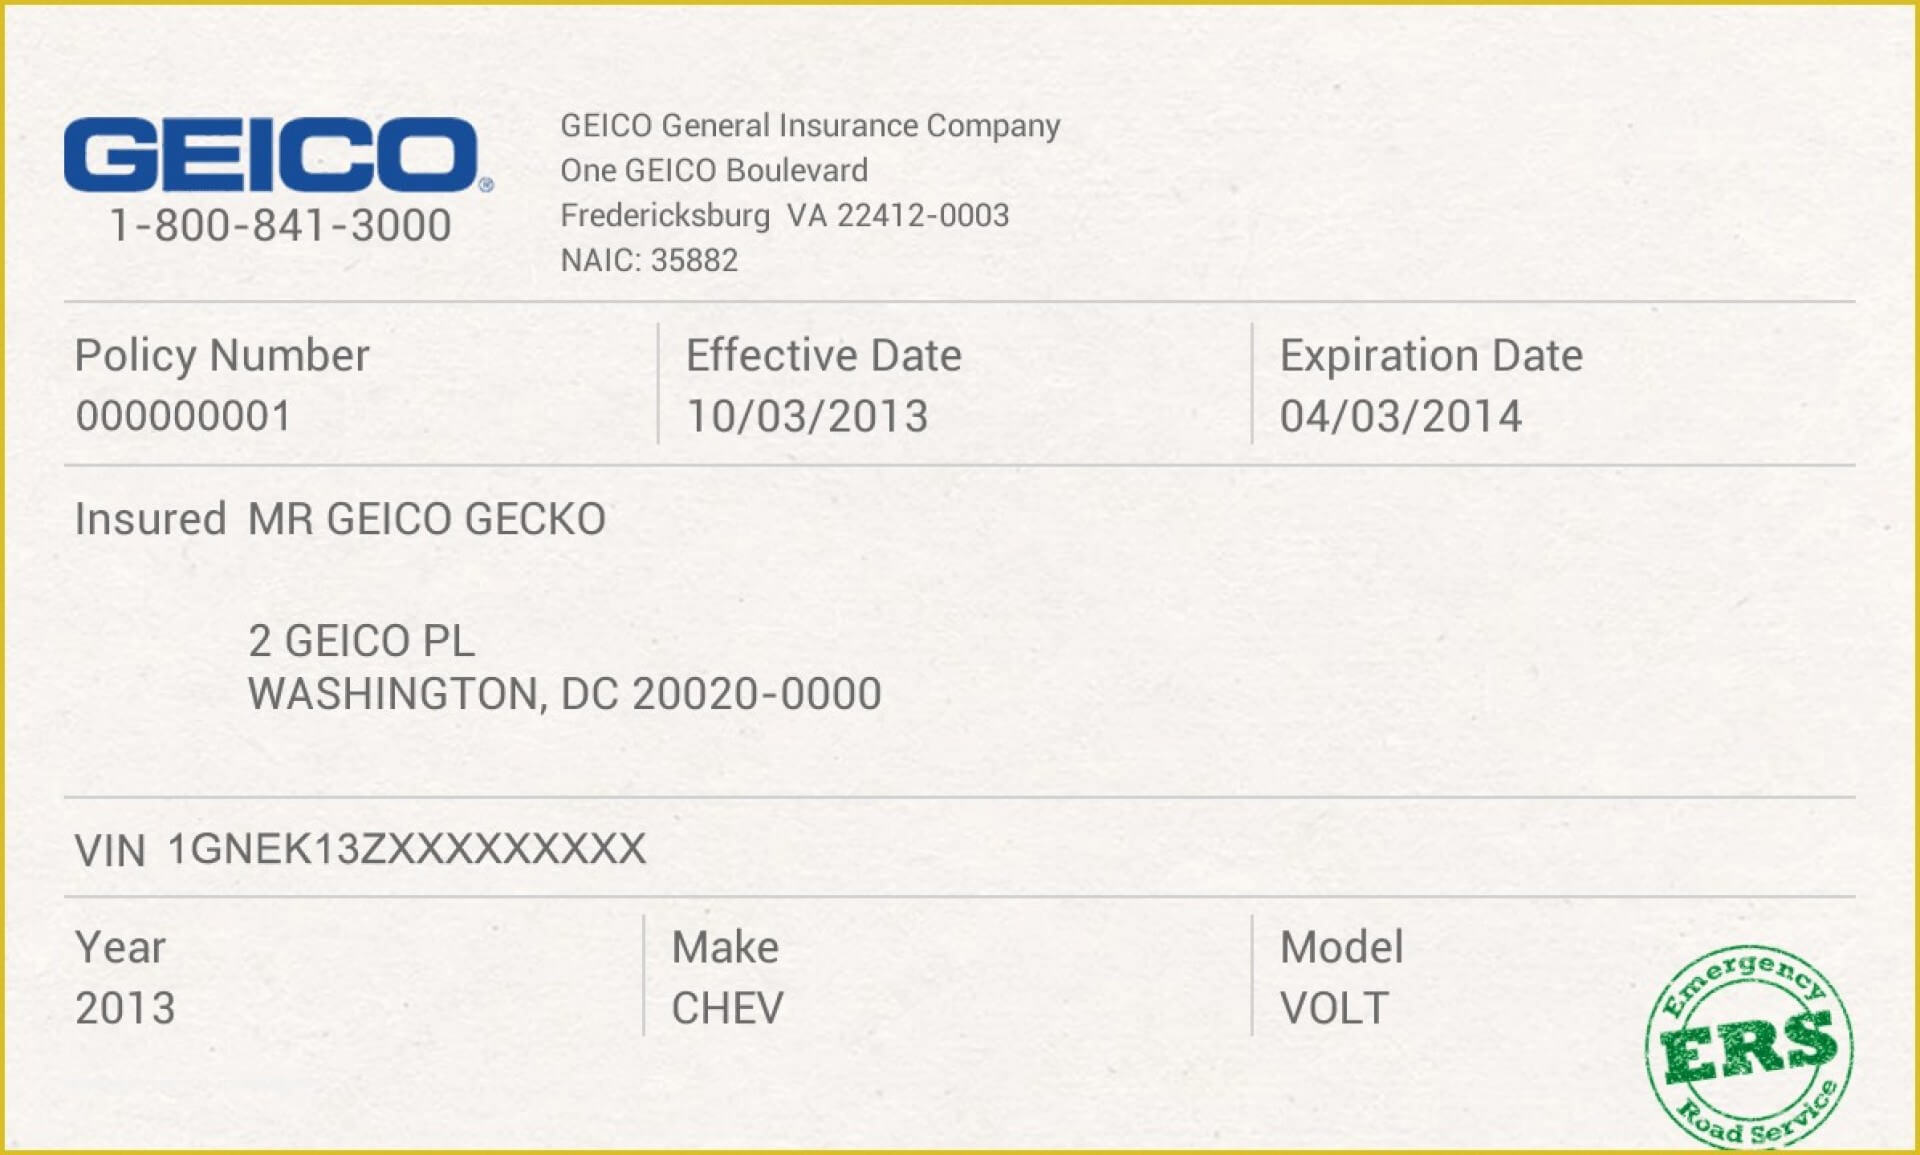 012 Company Car Policy Template Free Auto Insurance Id Card Pertaining To Auto Insurance Card Template Free Download